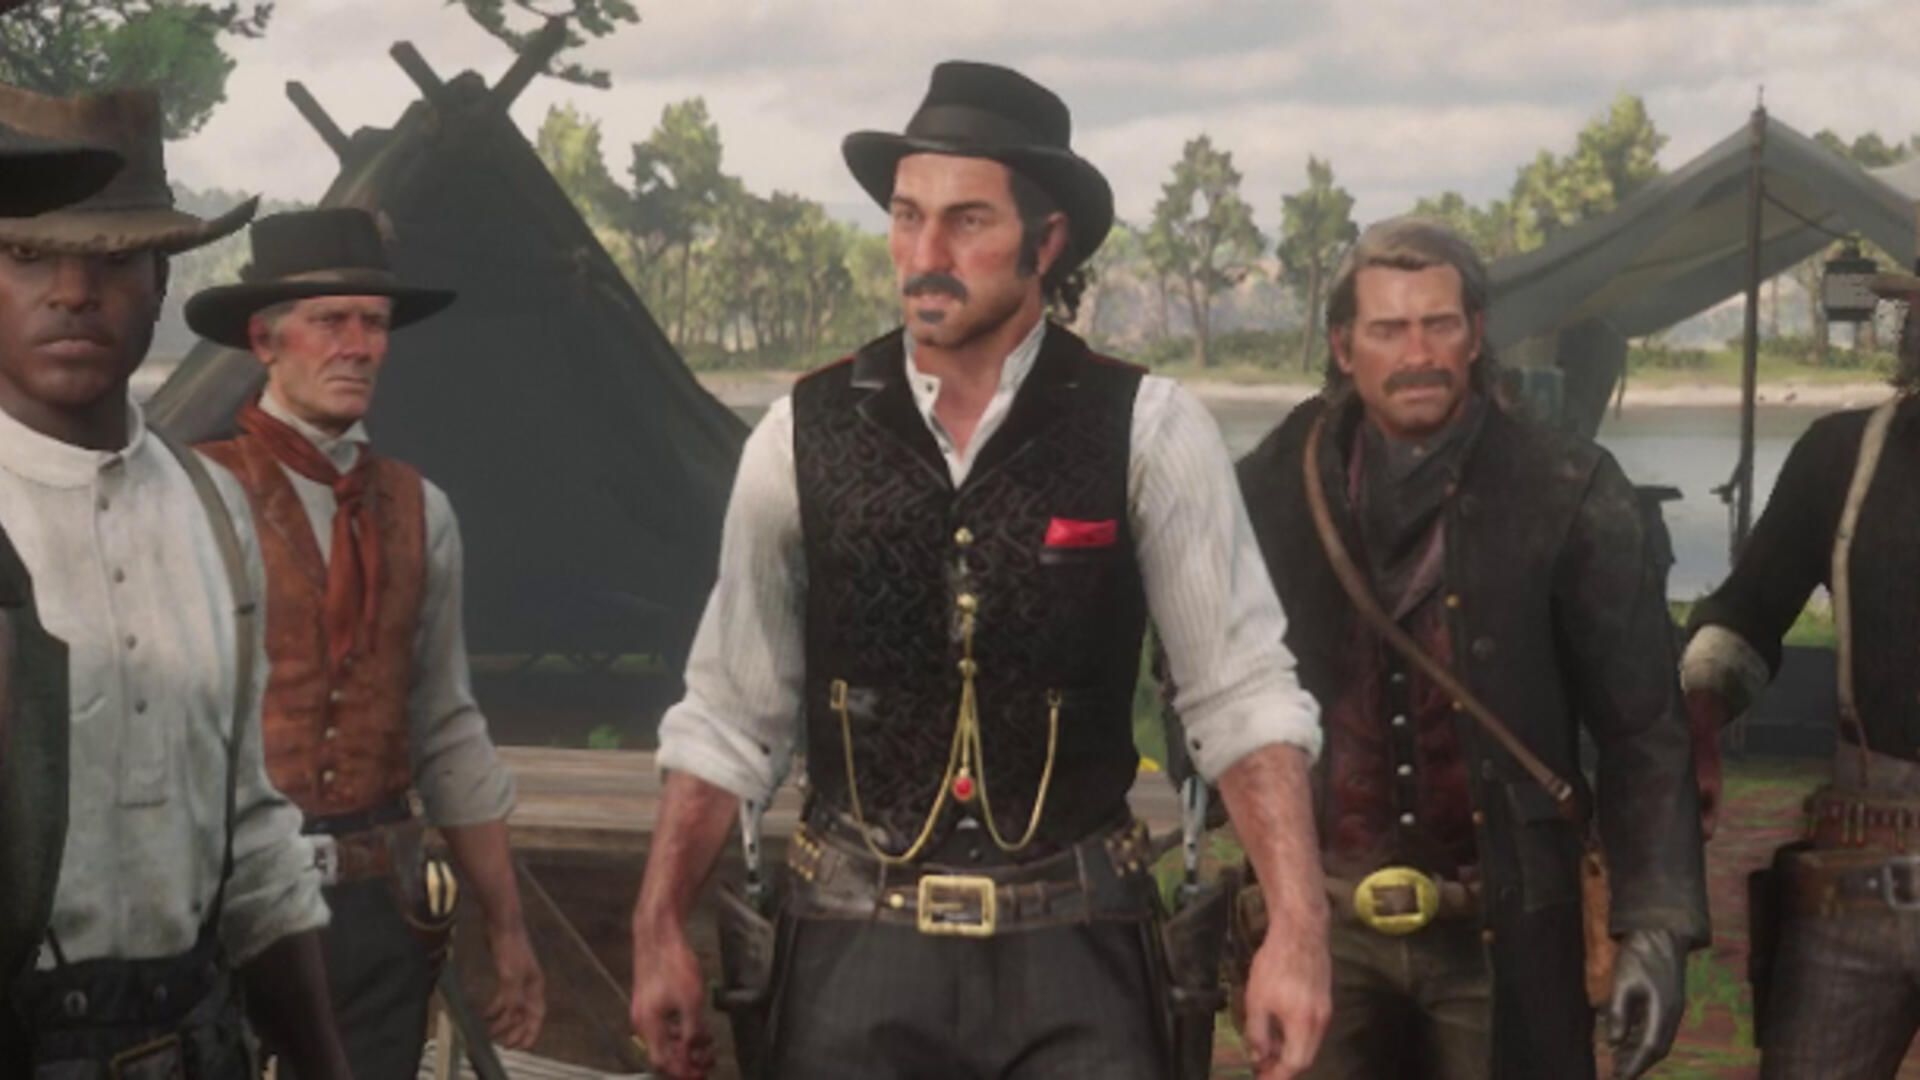 USG Game of the Year 2018: Red Dead Redemption 2 Built a Family, Then Slowly Tore it Apart